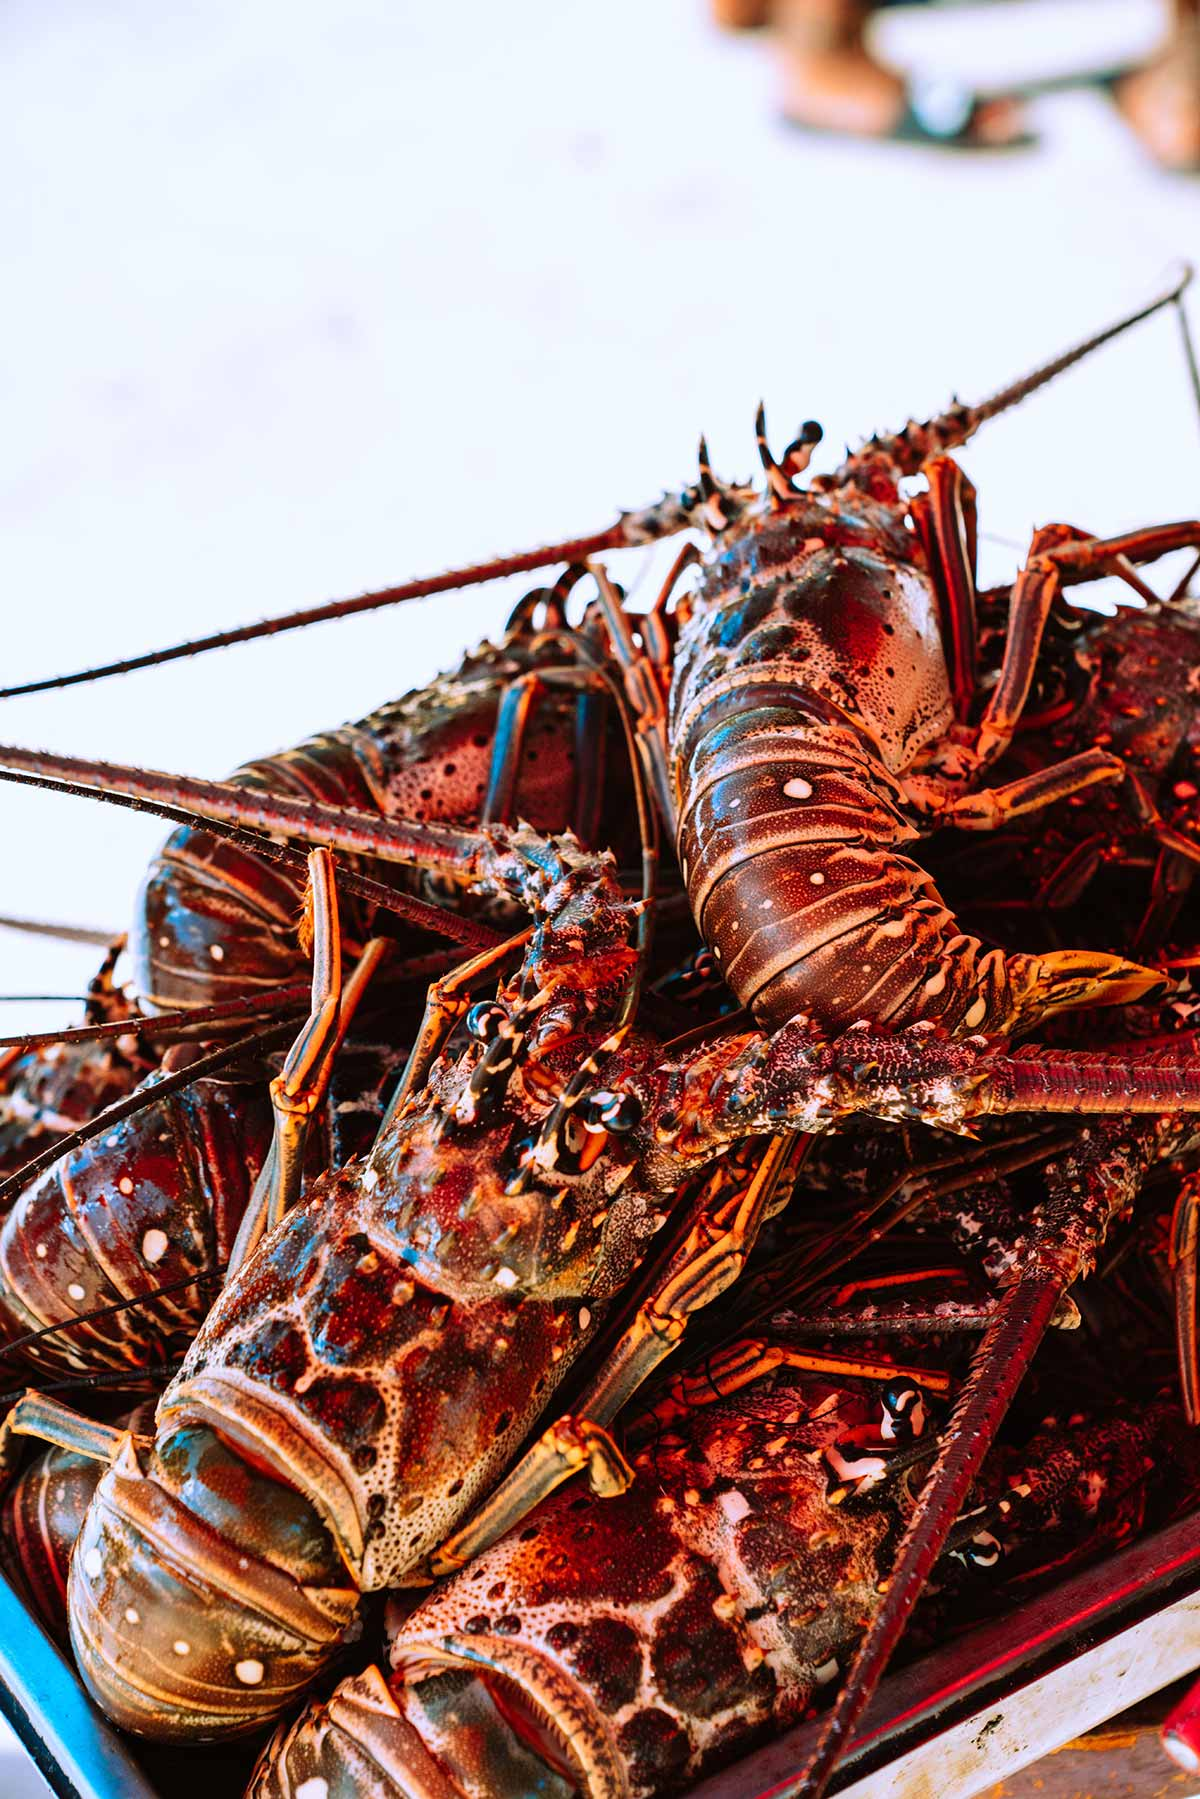 Trident experience in seafood processing